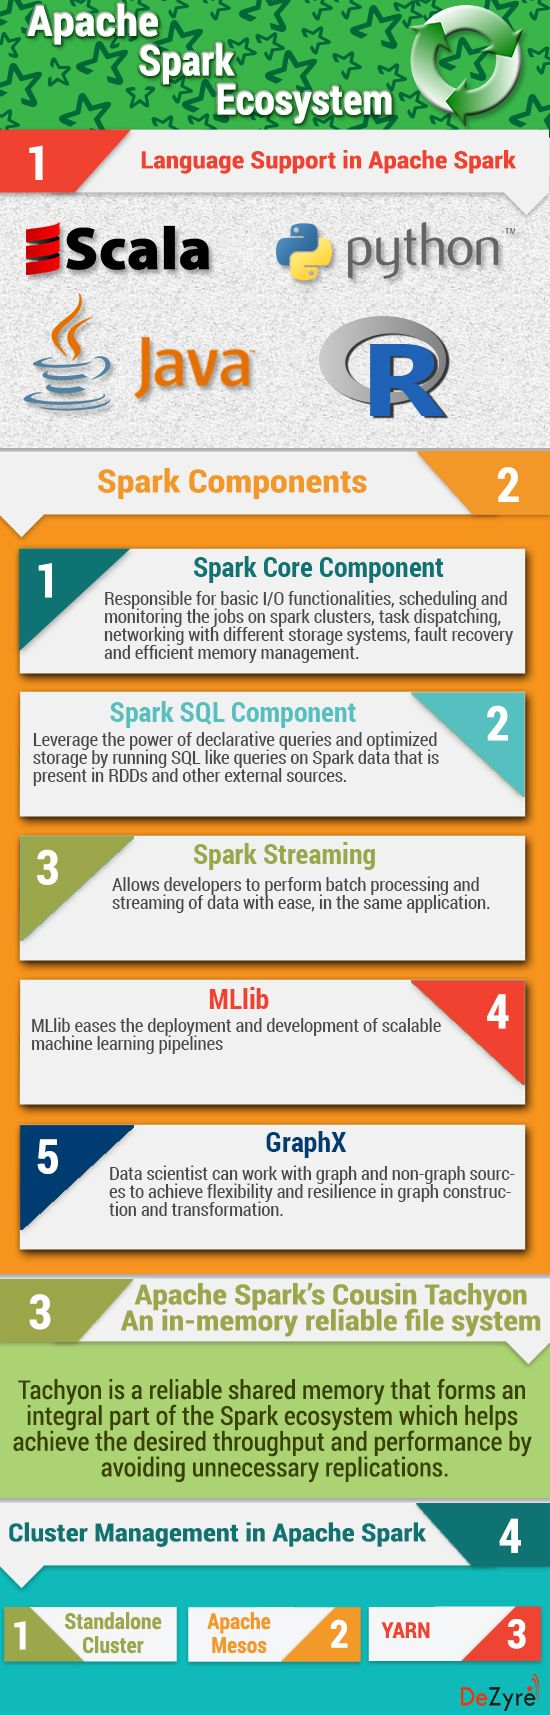 #Apache #Spark #DataProcessing #BigData Apache Spark Ecosystem and Spark Components